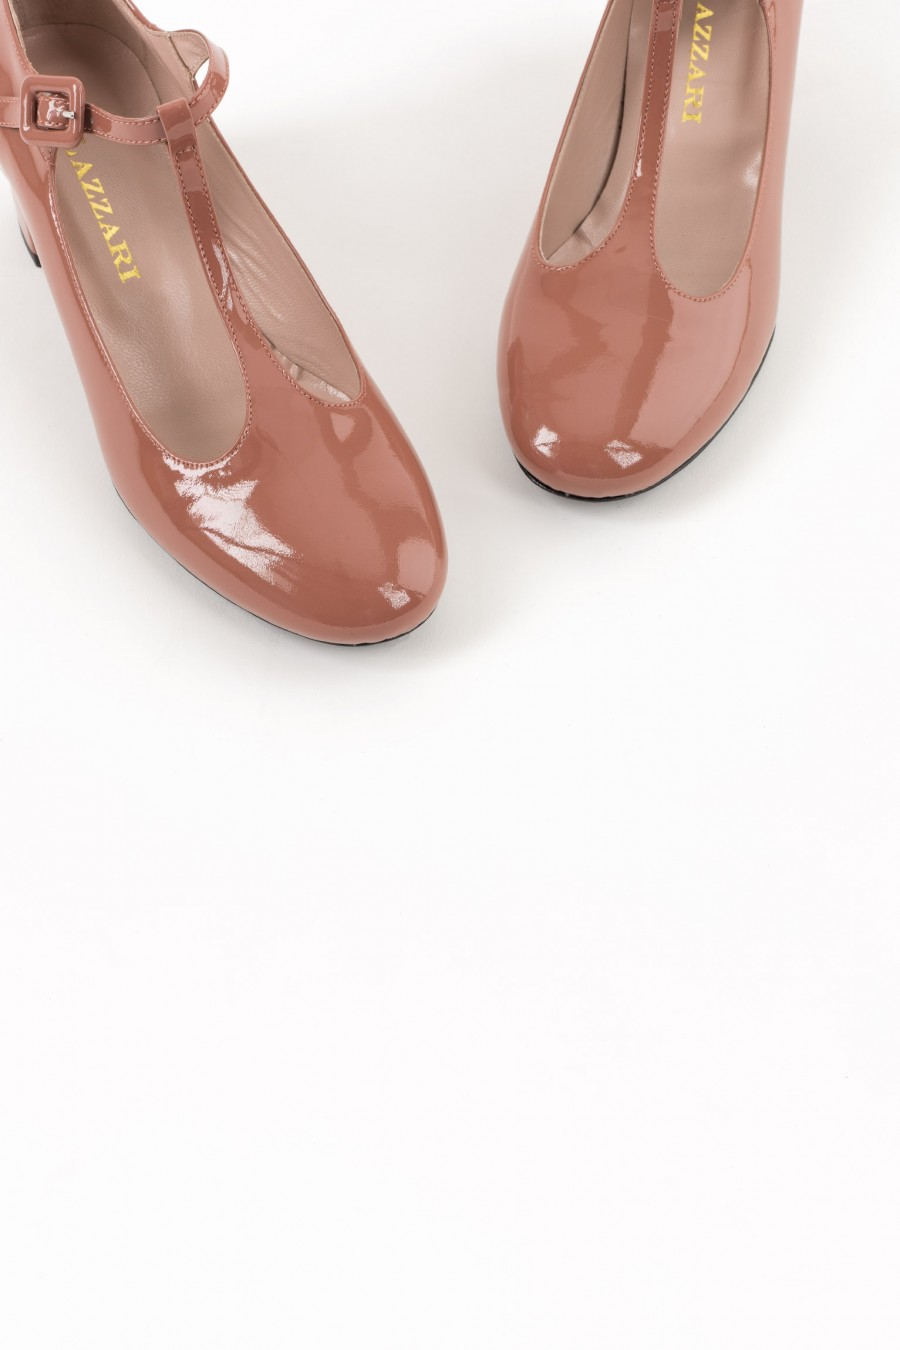 Dusty pink rounded toe bebè shoes